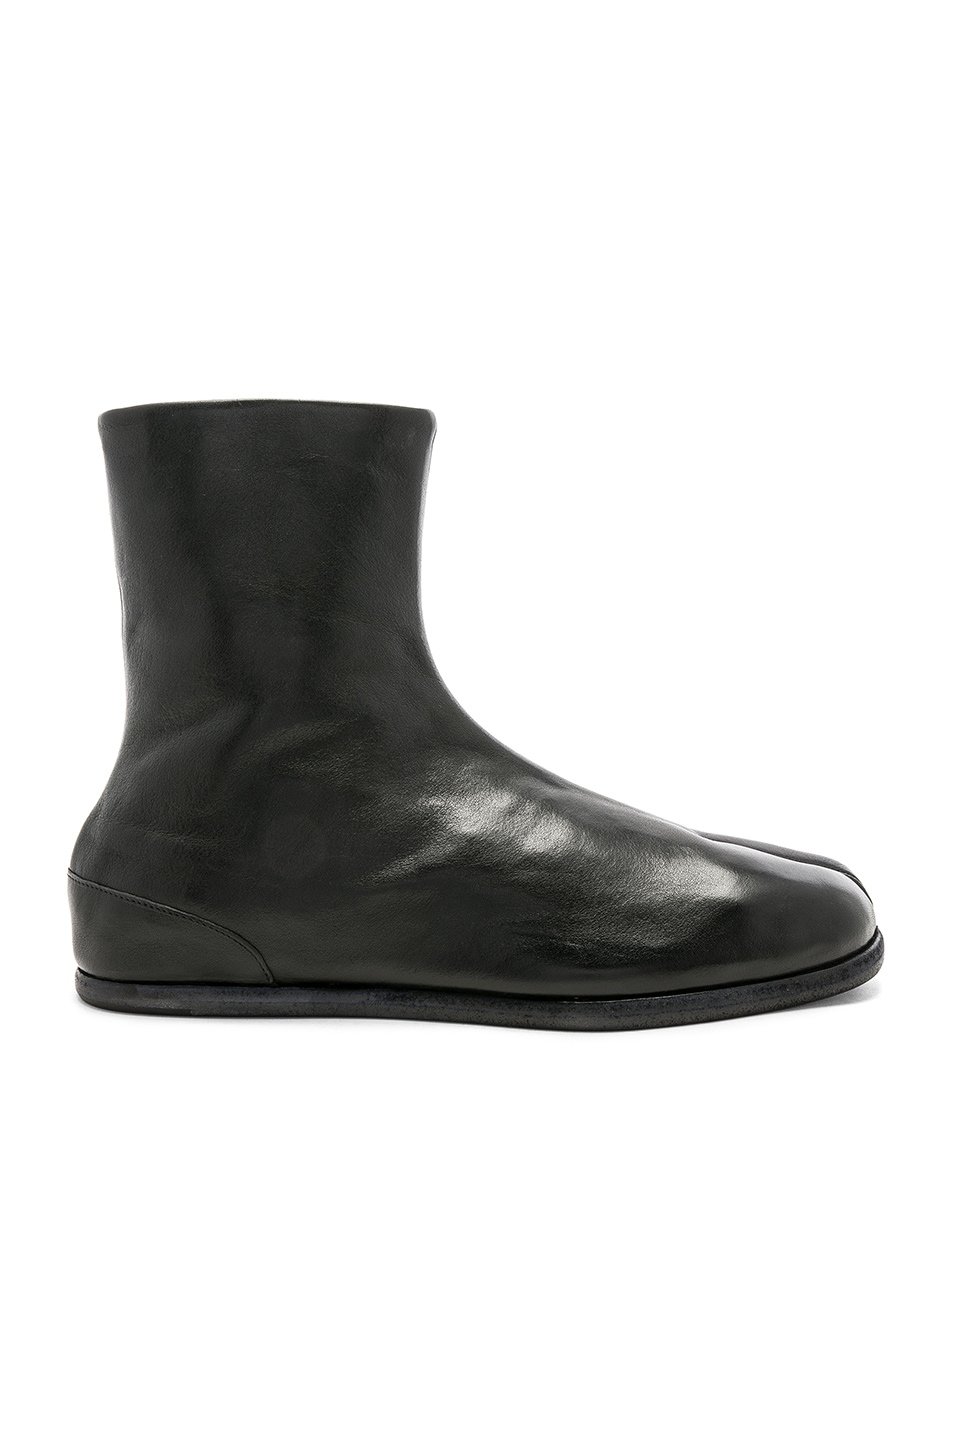 Maison Margiela Leather Tabi Boots in . uFUiJOok